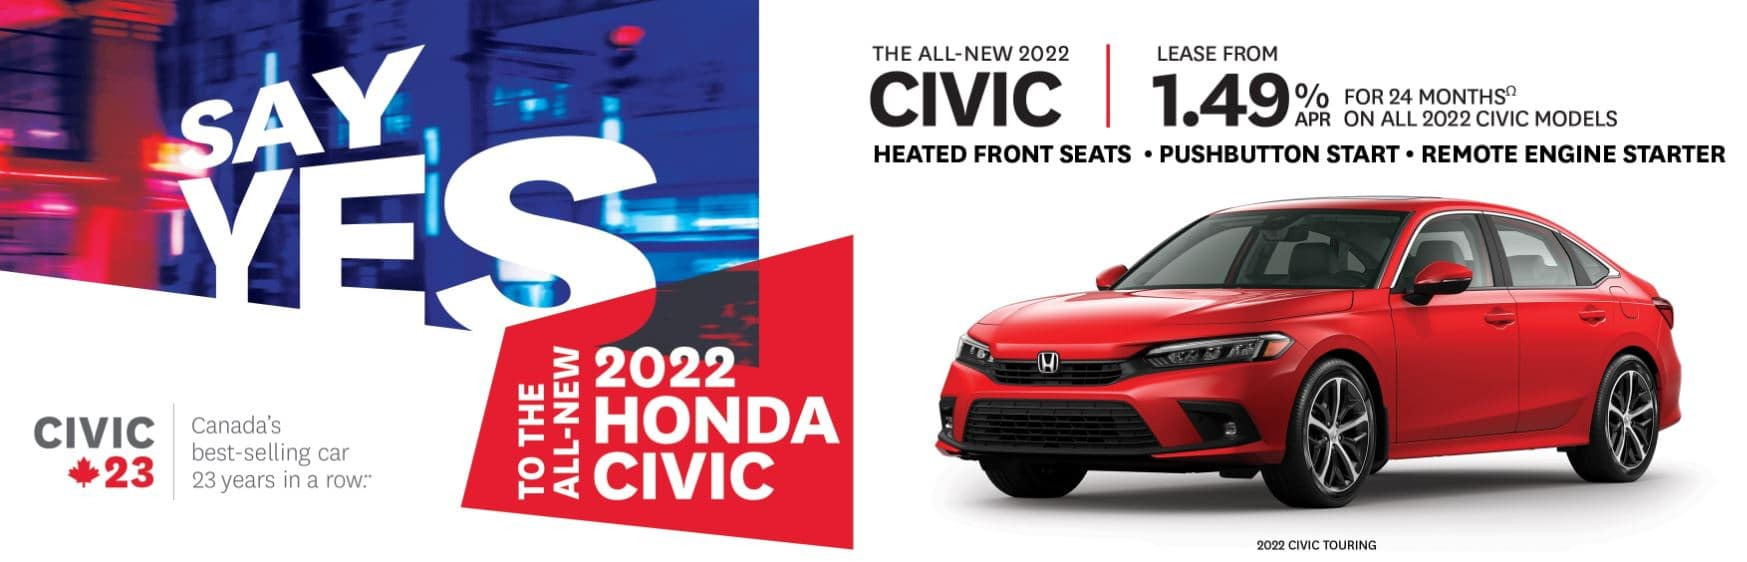 2022_Honda_Civic_Lease_From